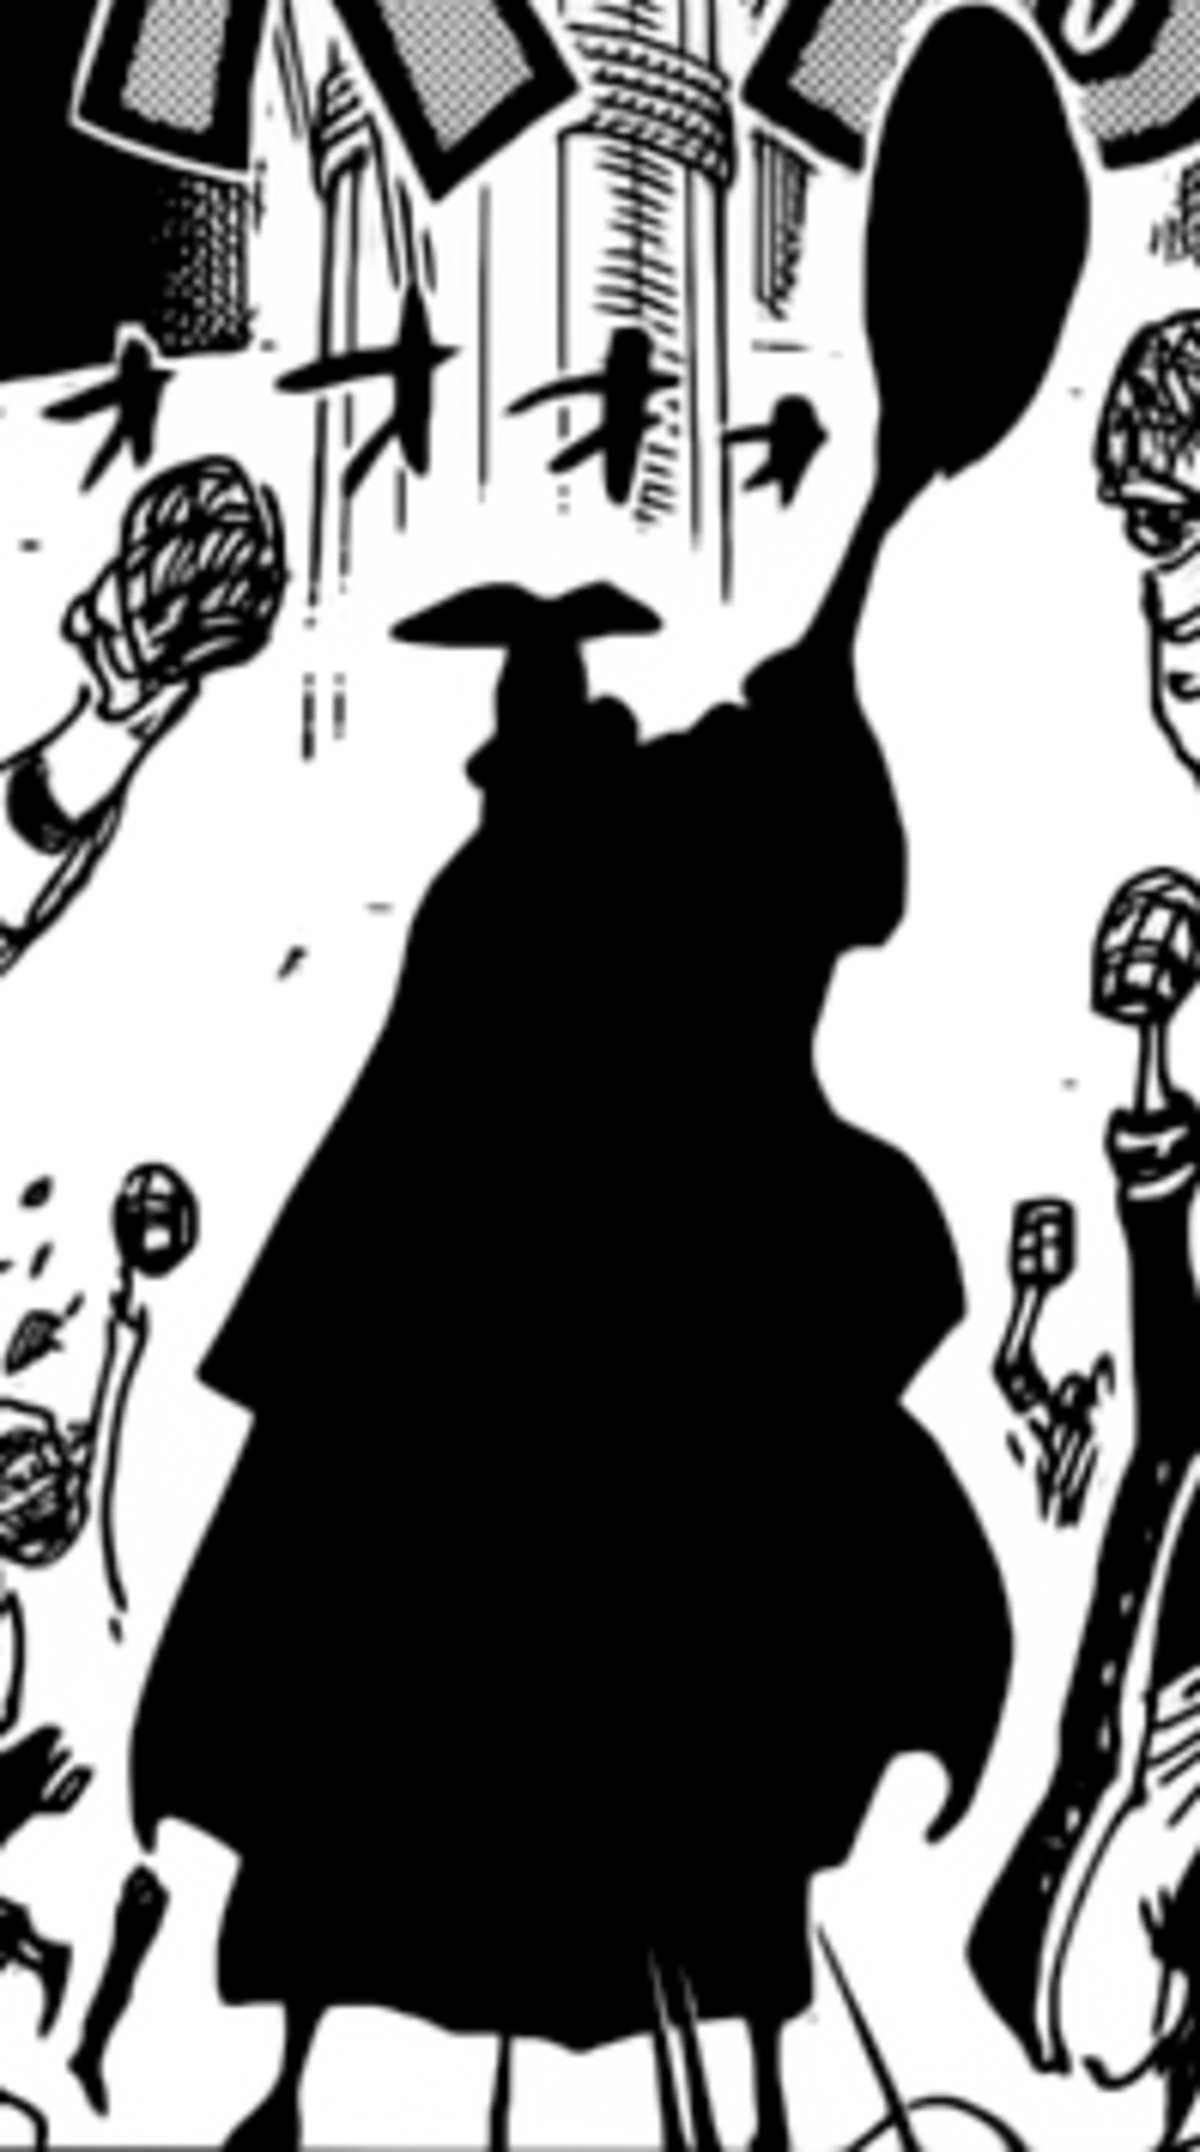 sengoku is oden. join list: onepiece (236 subs)Mention History.. That would be wild if that were the case.